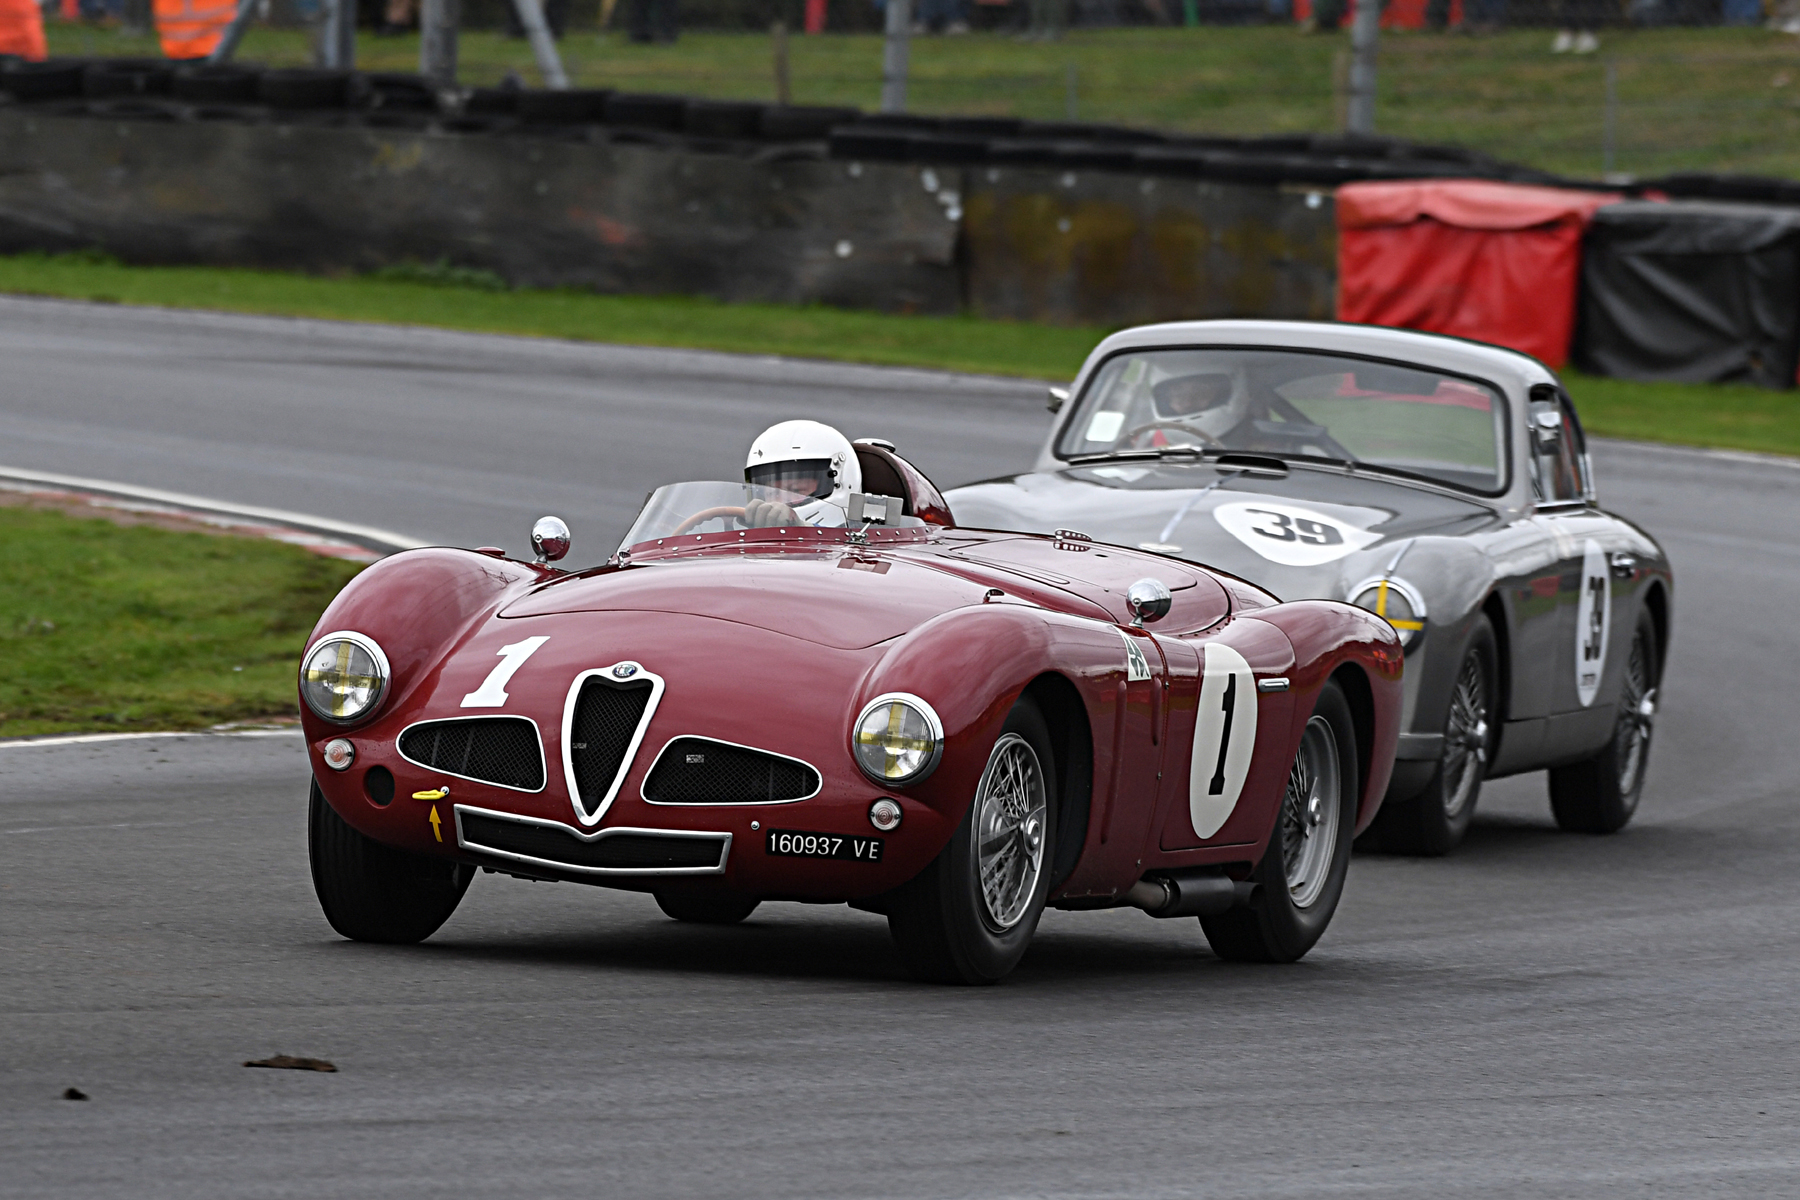 Alfa leads Aston. Chris Mann in the Disco Volante chased hard by Tim Stamper in the DB2/4. They had a great battle throughout the race, not even the pitstops breaking it up. It only ended when Chris pranged the Alfa and failed to finish (although I'm not yet in full possession of the circumstances)  Photo - Jeff Bloxham